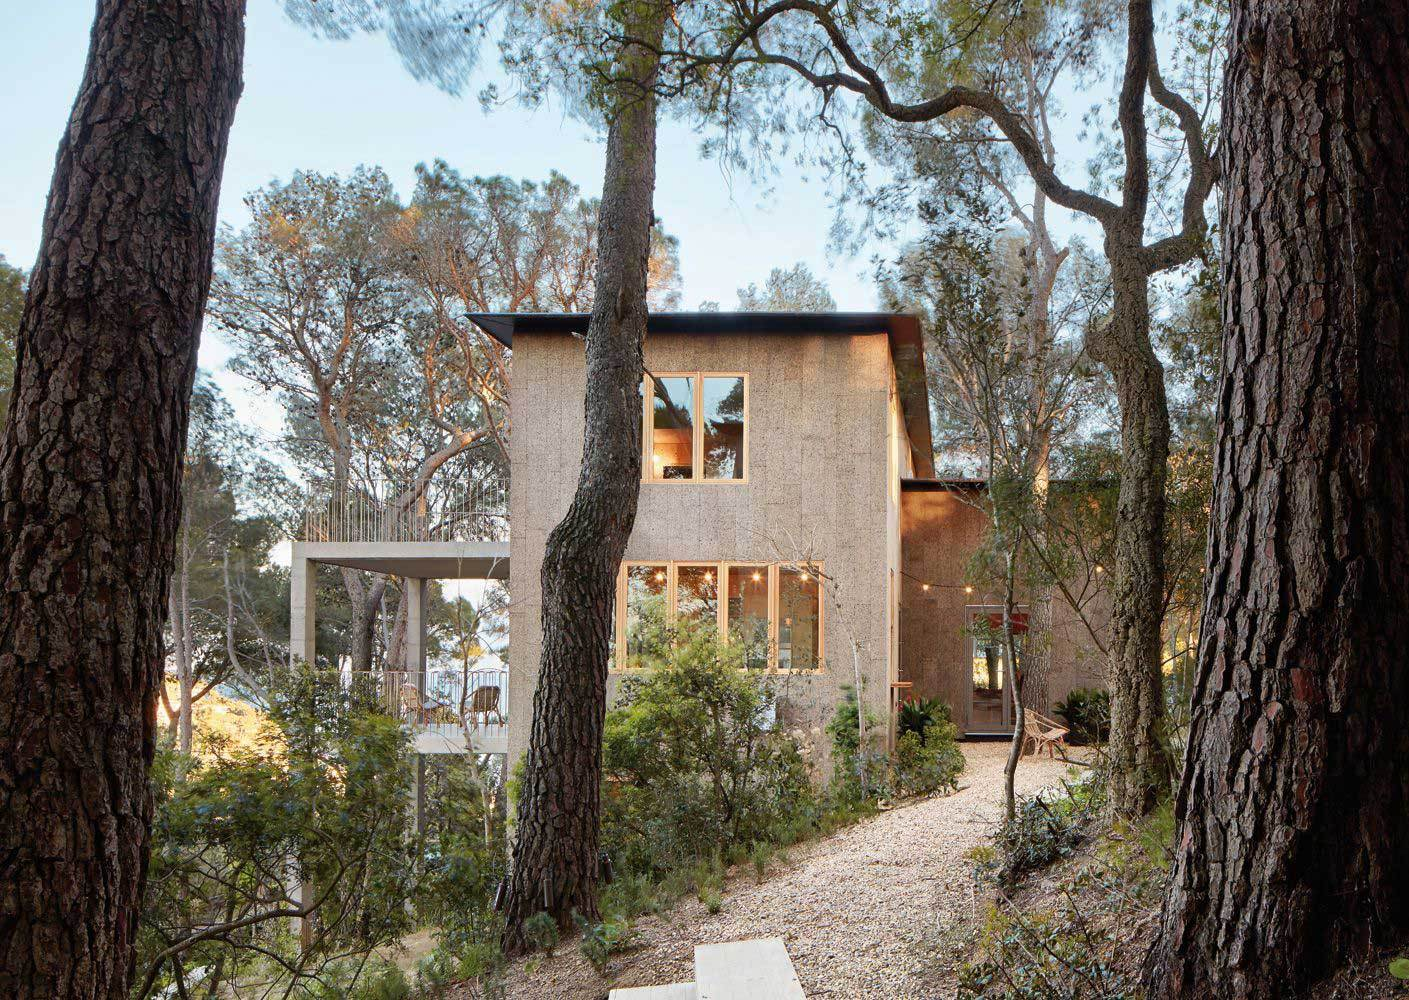 Two-Cork-Houses-Palafrugell-Costa-Brava-by-Lopez-Rivera-Architects-Yellowtrace-19